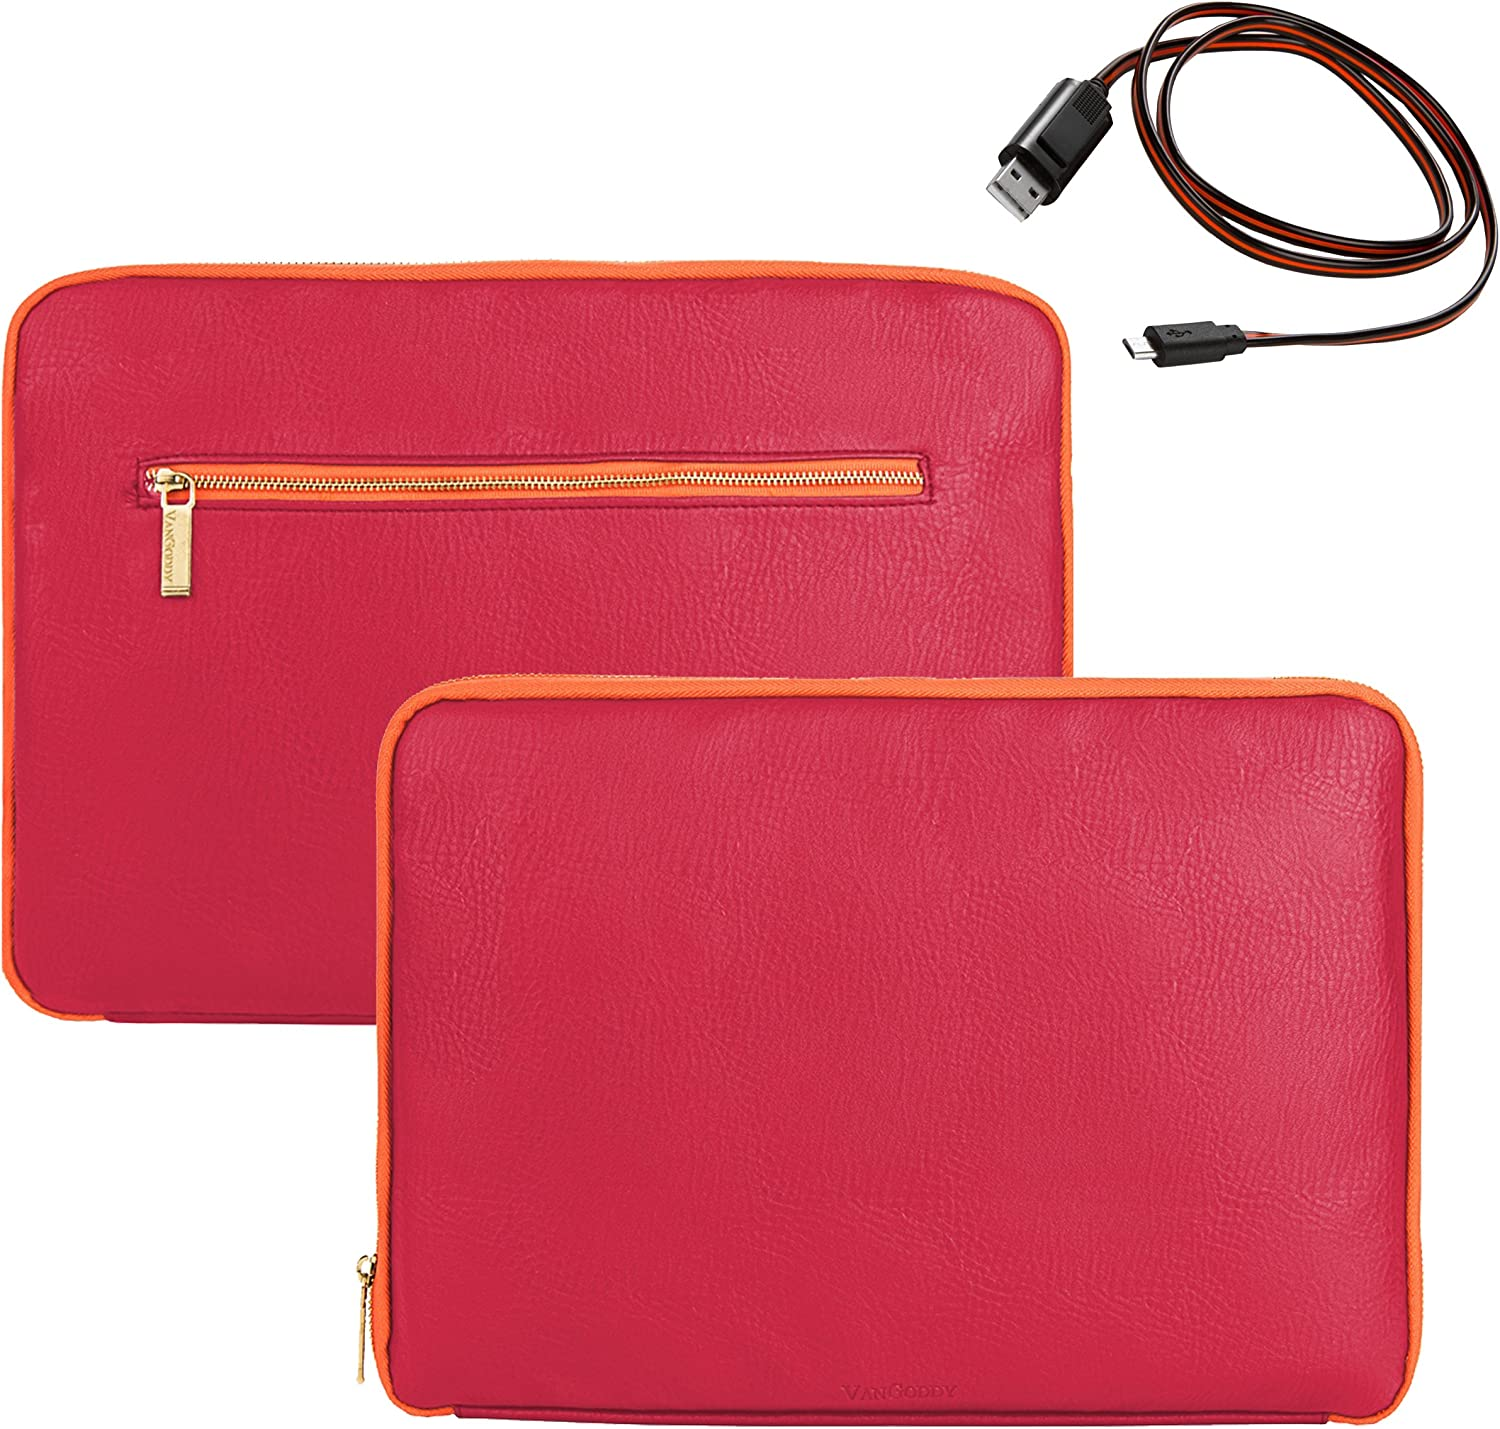 Gigabyte U Series U2142 11.6 inch Magenta and Orange with Micro USB Cable Vangoddy Irista 15 Inch PU Leather Tablet Padded Sleeve for Ematic Dual Core 13.3 inch